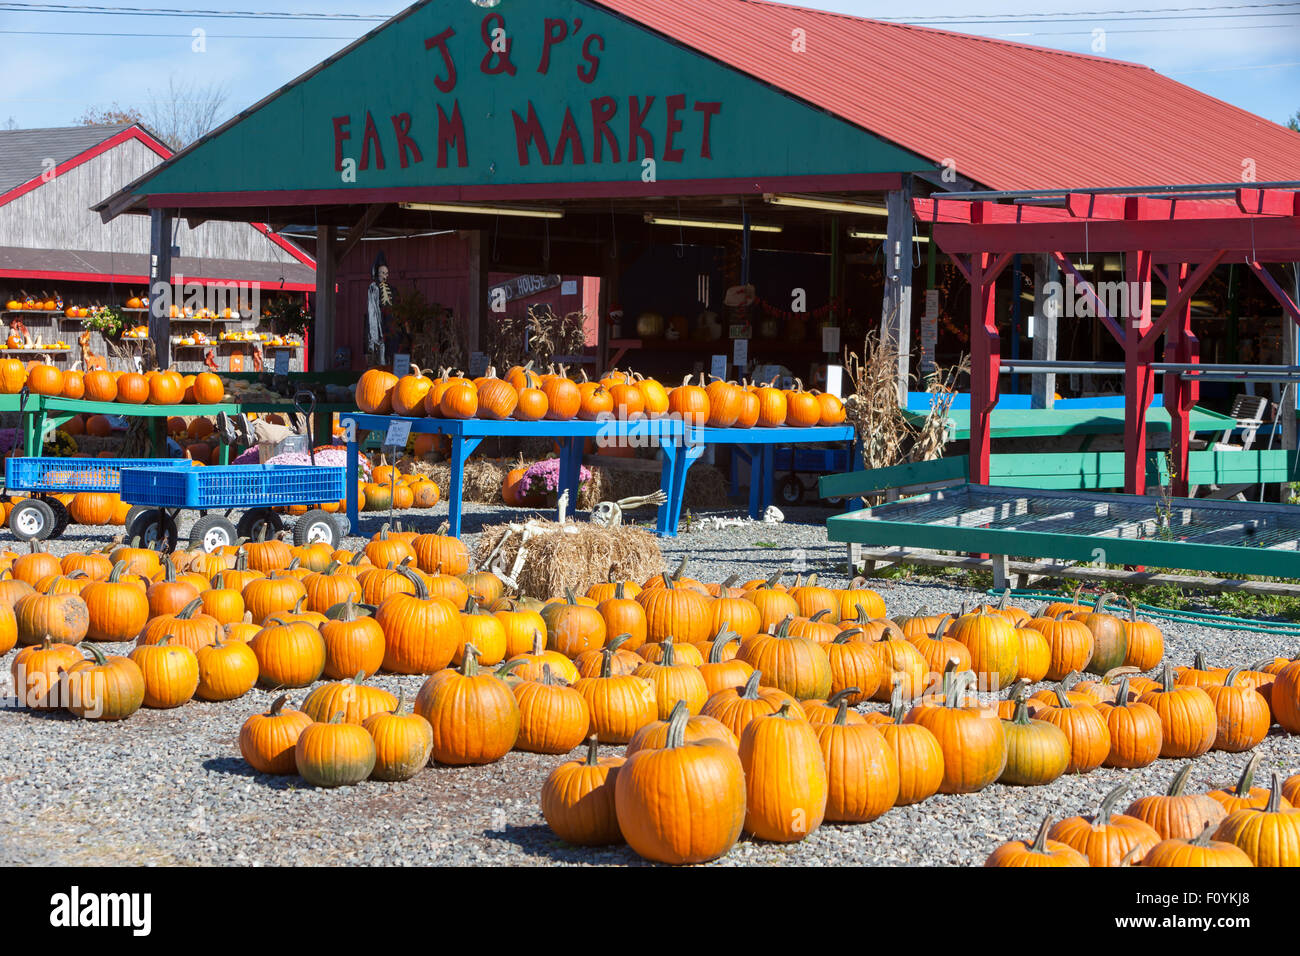 Pumpkins ready for Halloween at J & P's Farm Market in Trenton, Maine. - Stock Image